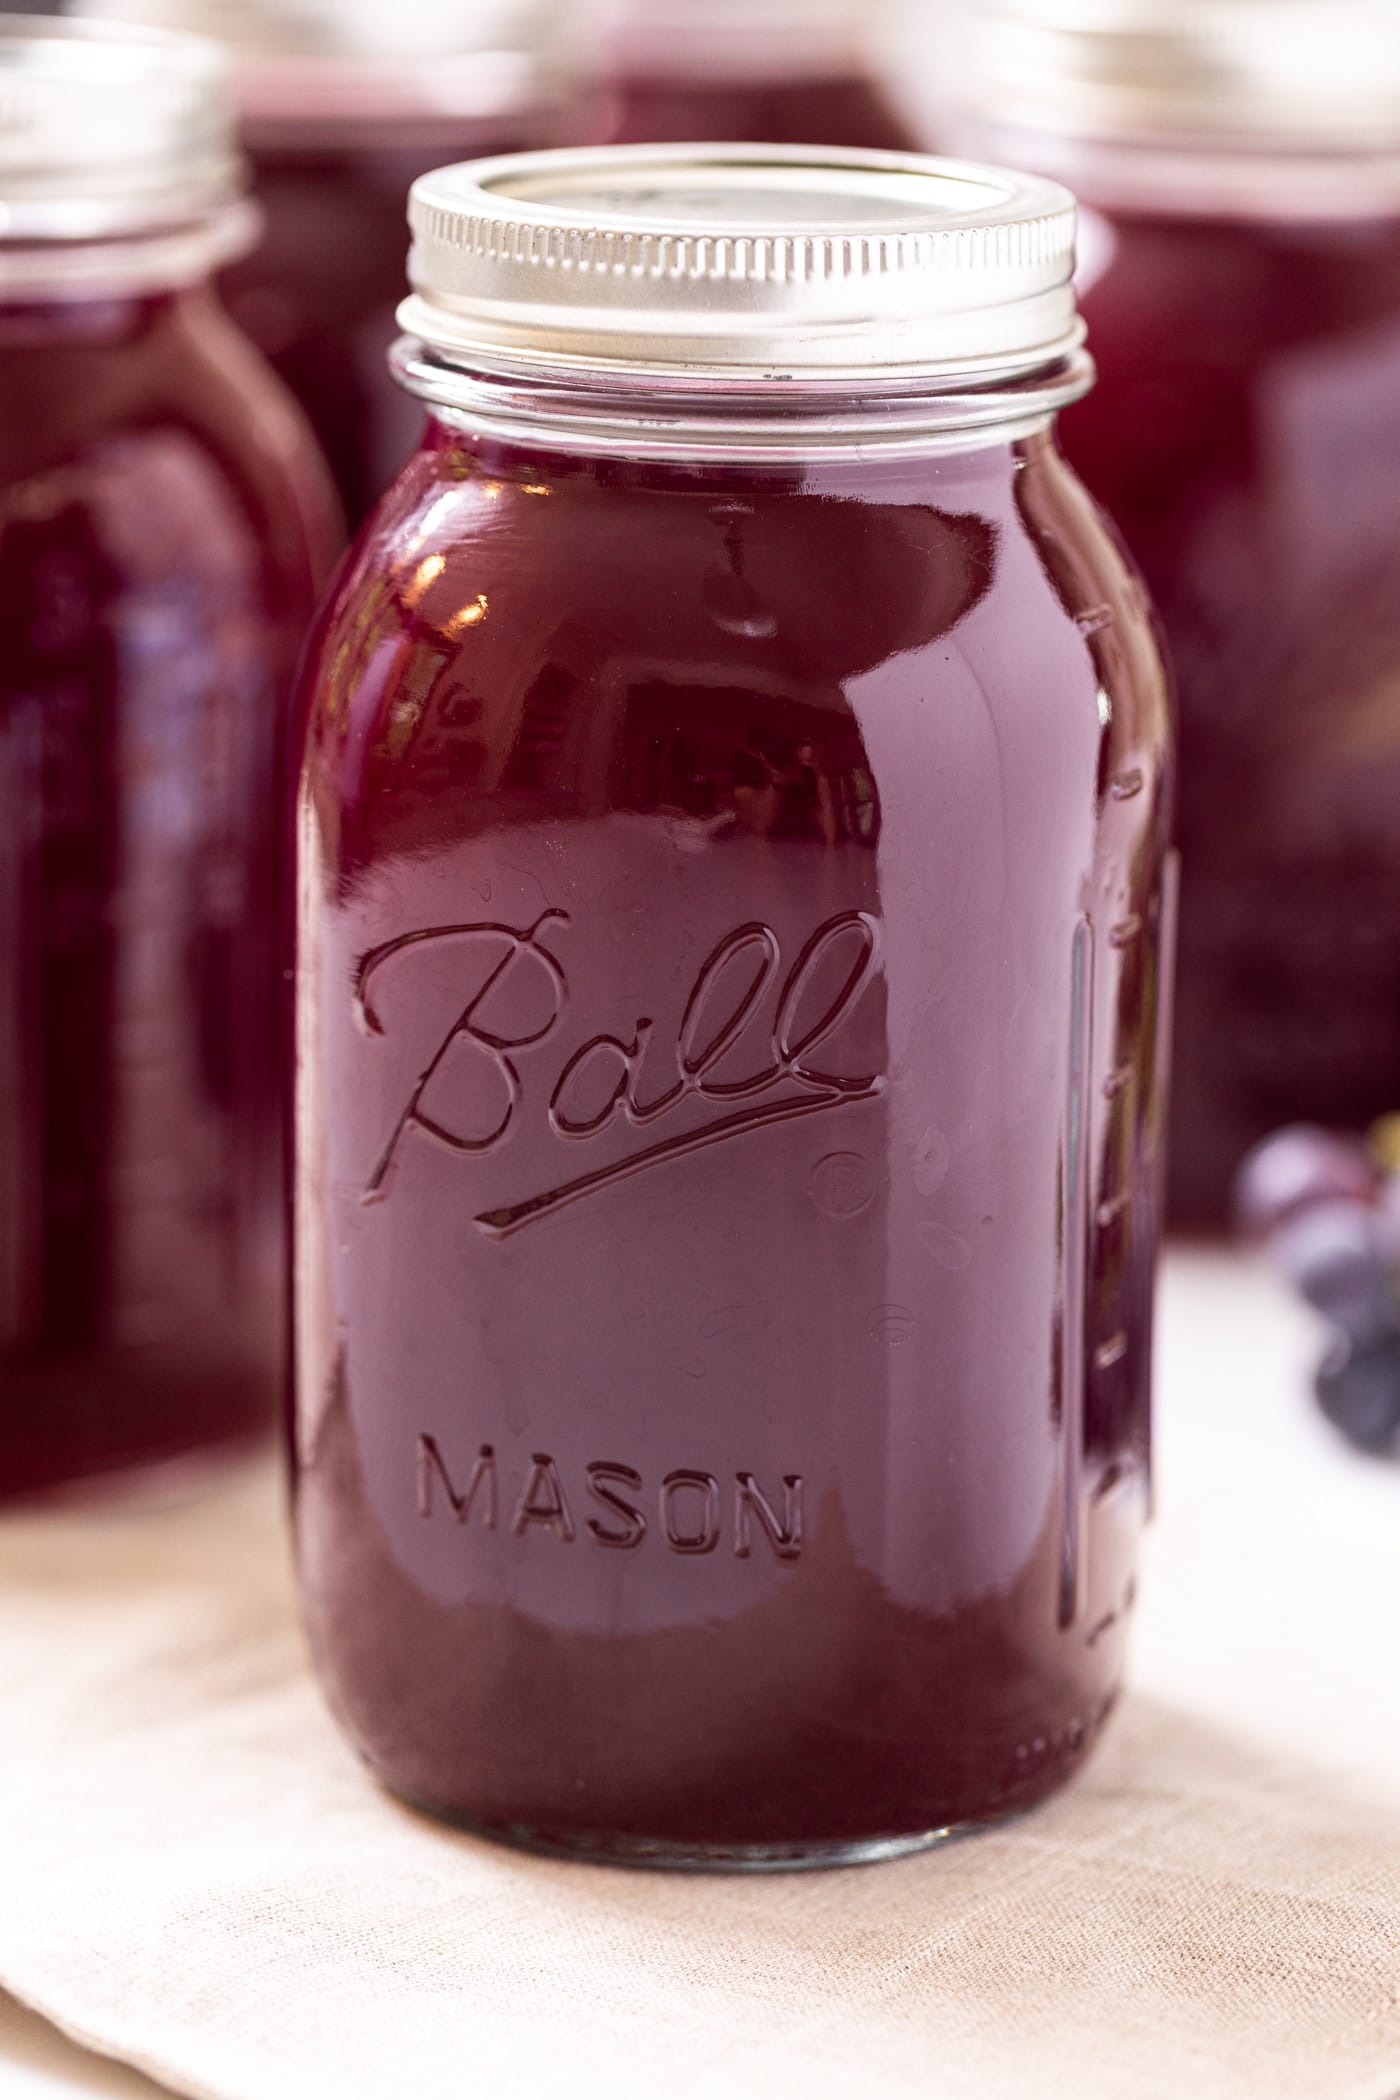 Close up view of large glass container filled with dark purple grape juice concentrate sitting on tan cloth